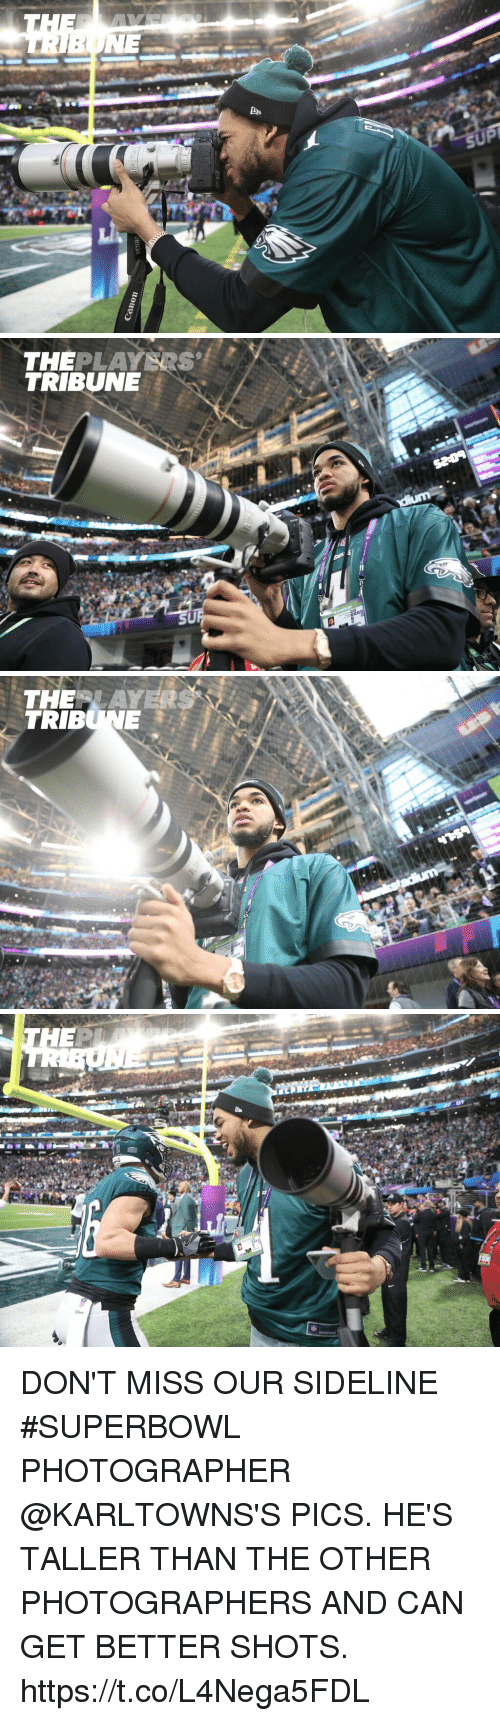 Memes, Superbowl, and 🤖: NE   THEPLAYERS  TRIBUNE   THERLAYERS  TRIBUNE DON'T MISS OUR SIDELINE #SUPERBOWL PHOTOGRAPHER @KARLTOWNS'S PICS. HE'S TALLER THAN THE OTHER PHOTOGRAPHERS AND CAN GET BETTER SHOTS. https://t.co/L4Nega5FDL